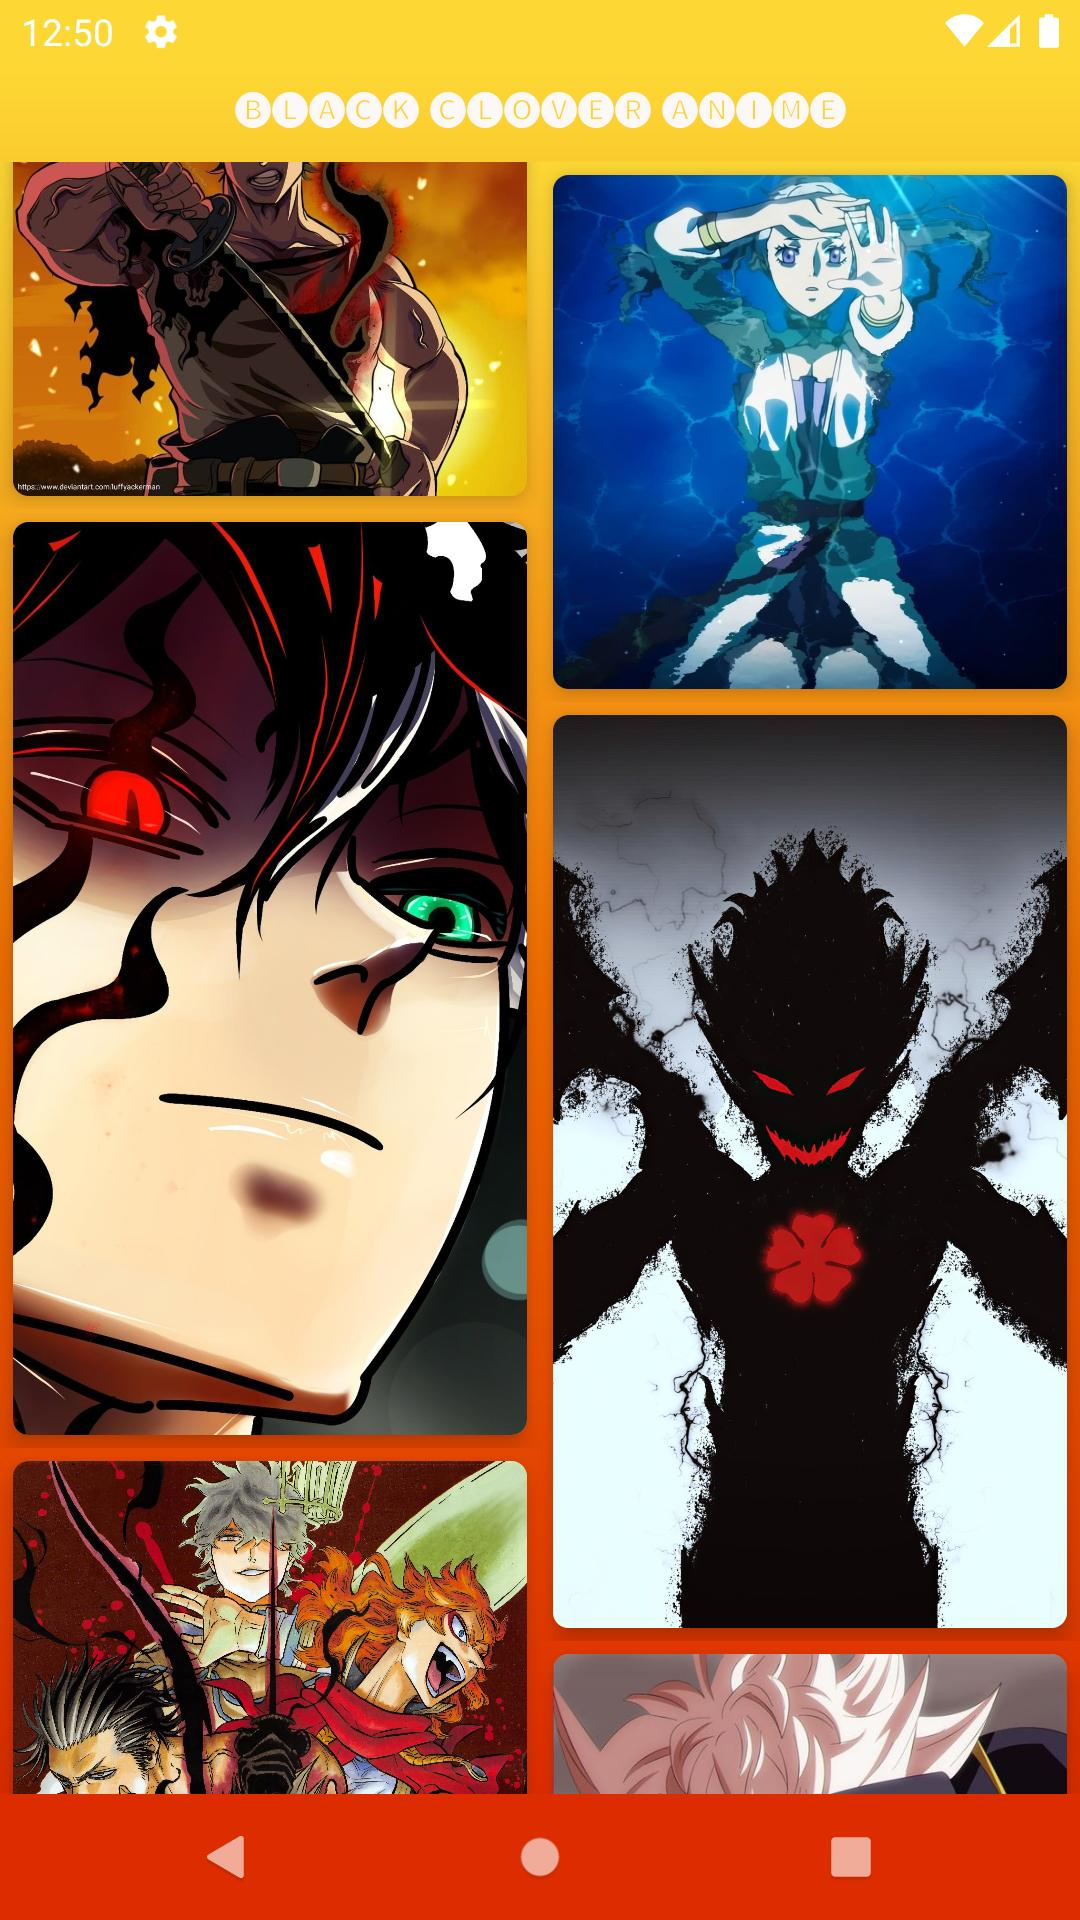 Black Clover Anime Wallpaper For Android Apk Download Lift your spirits with funny jokes, trending memes, entertaining gifs, inspiring stories, viral videos, and so much more. black clover anime wallpaper for